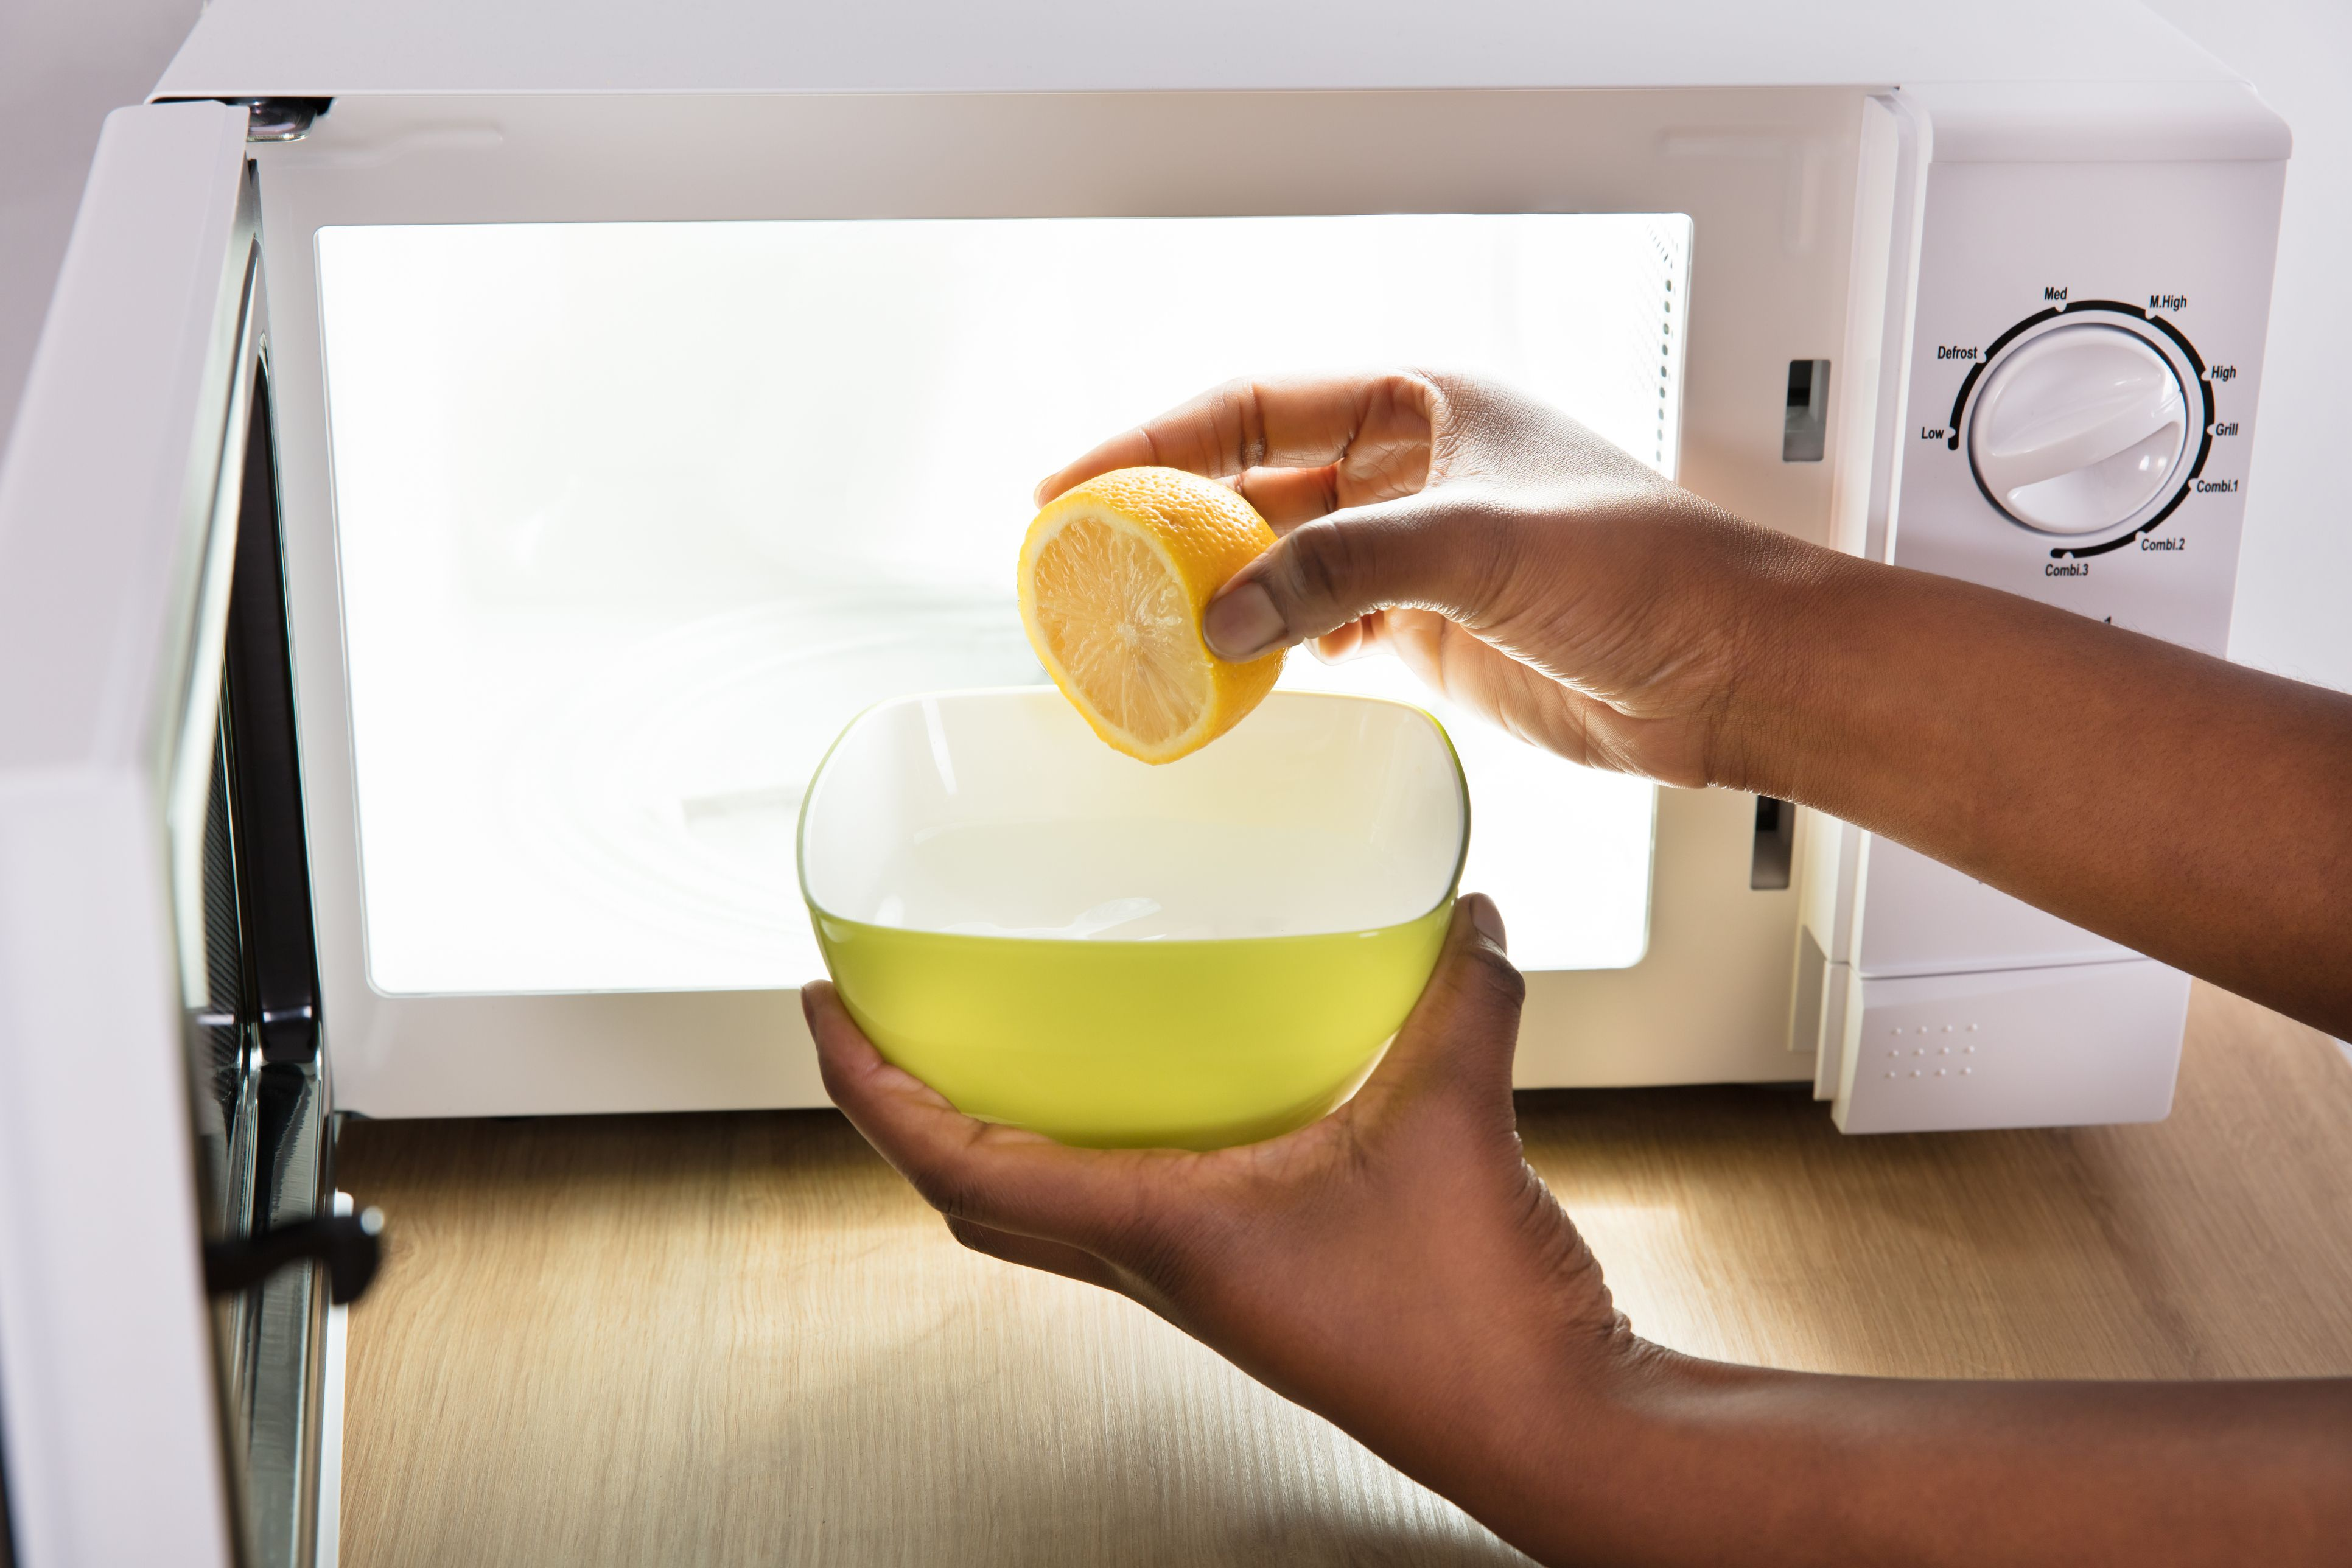 to clean a microwave with lemon